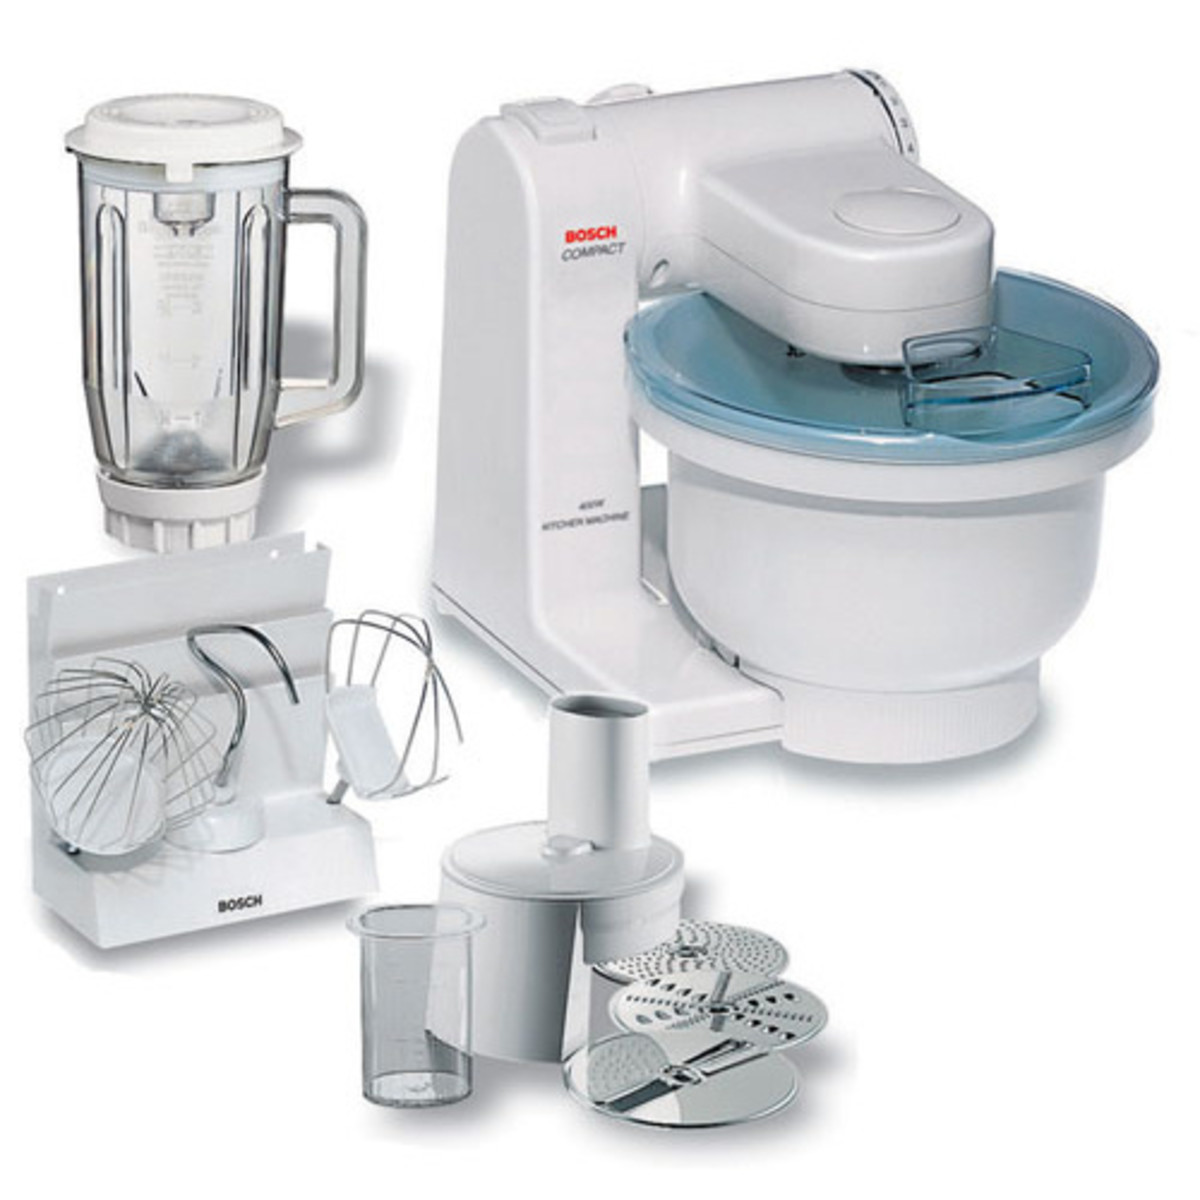 Bosch 400-Watt Compact Mixer Product Review